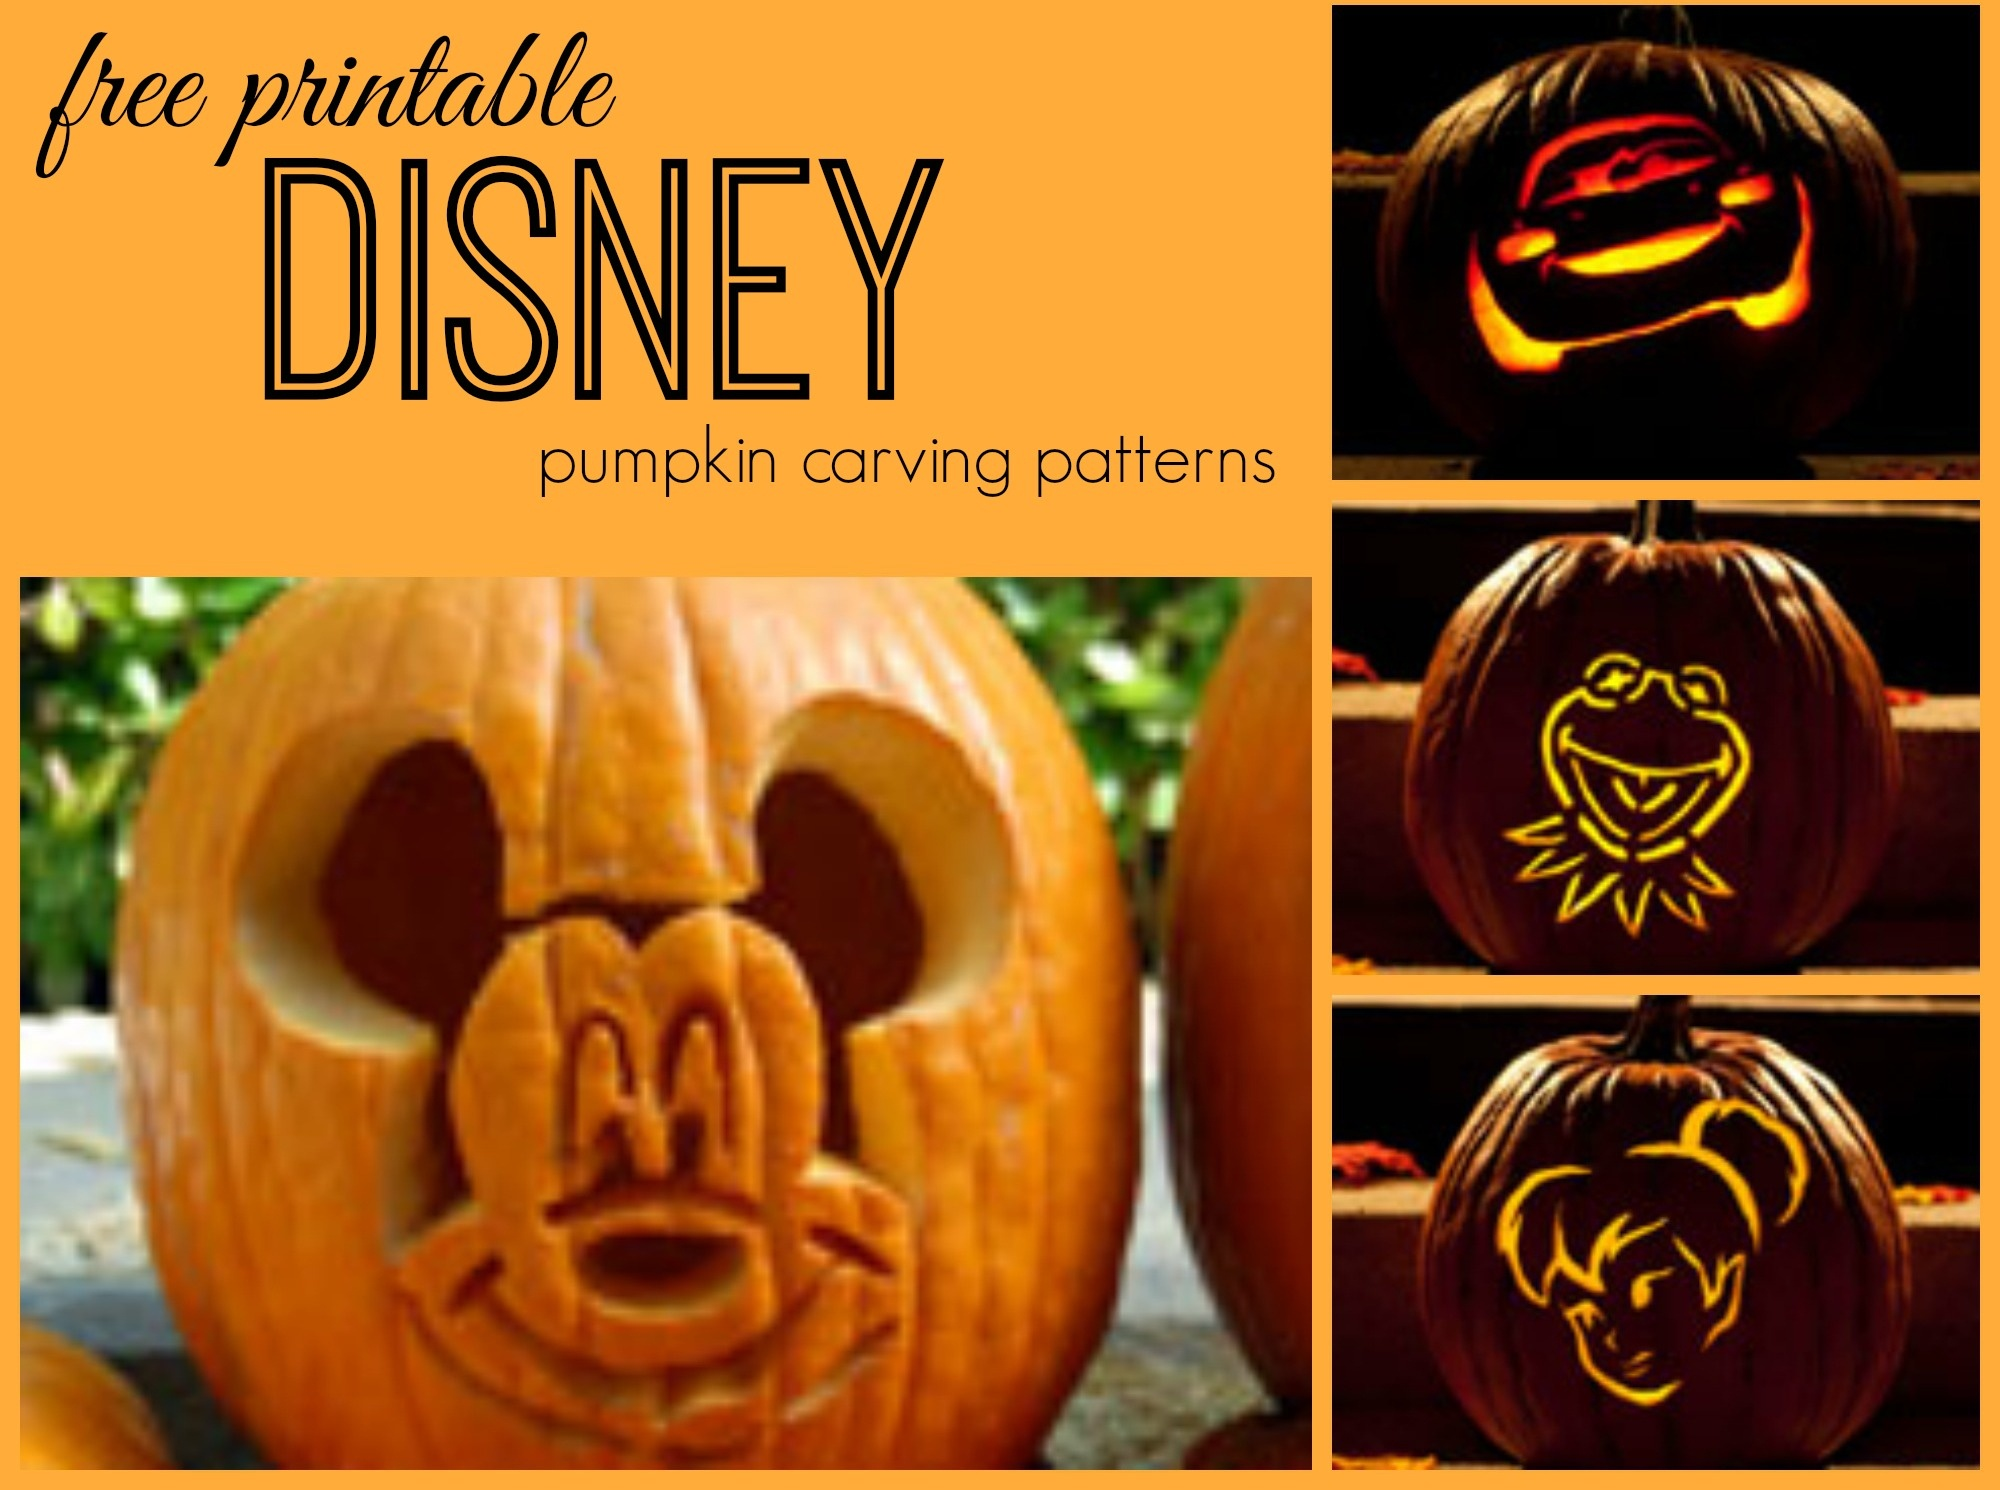 Disney Pumpkin Carving Patterns - Frugal Fanatic - Pumpkin Carving Patterns Free Printable